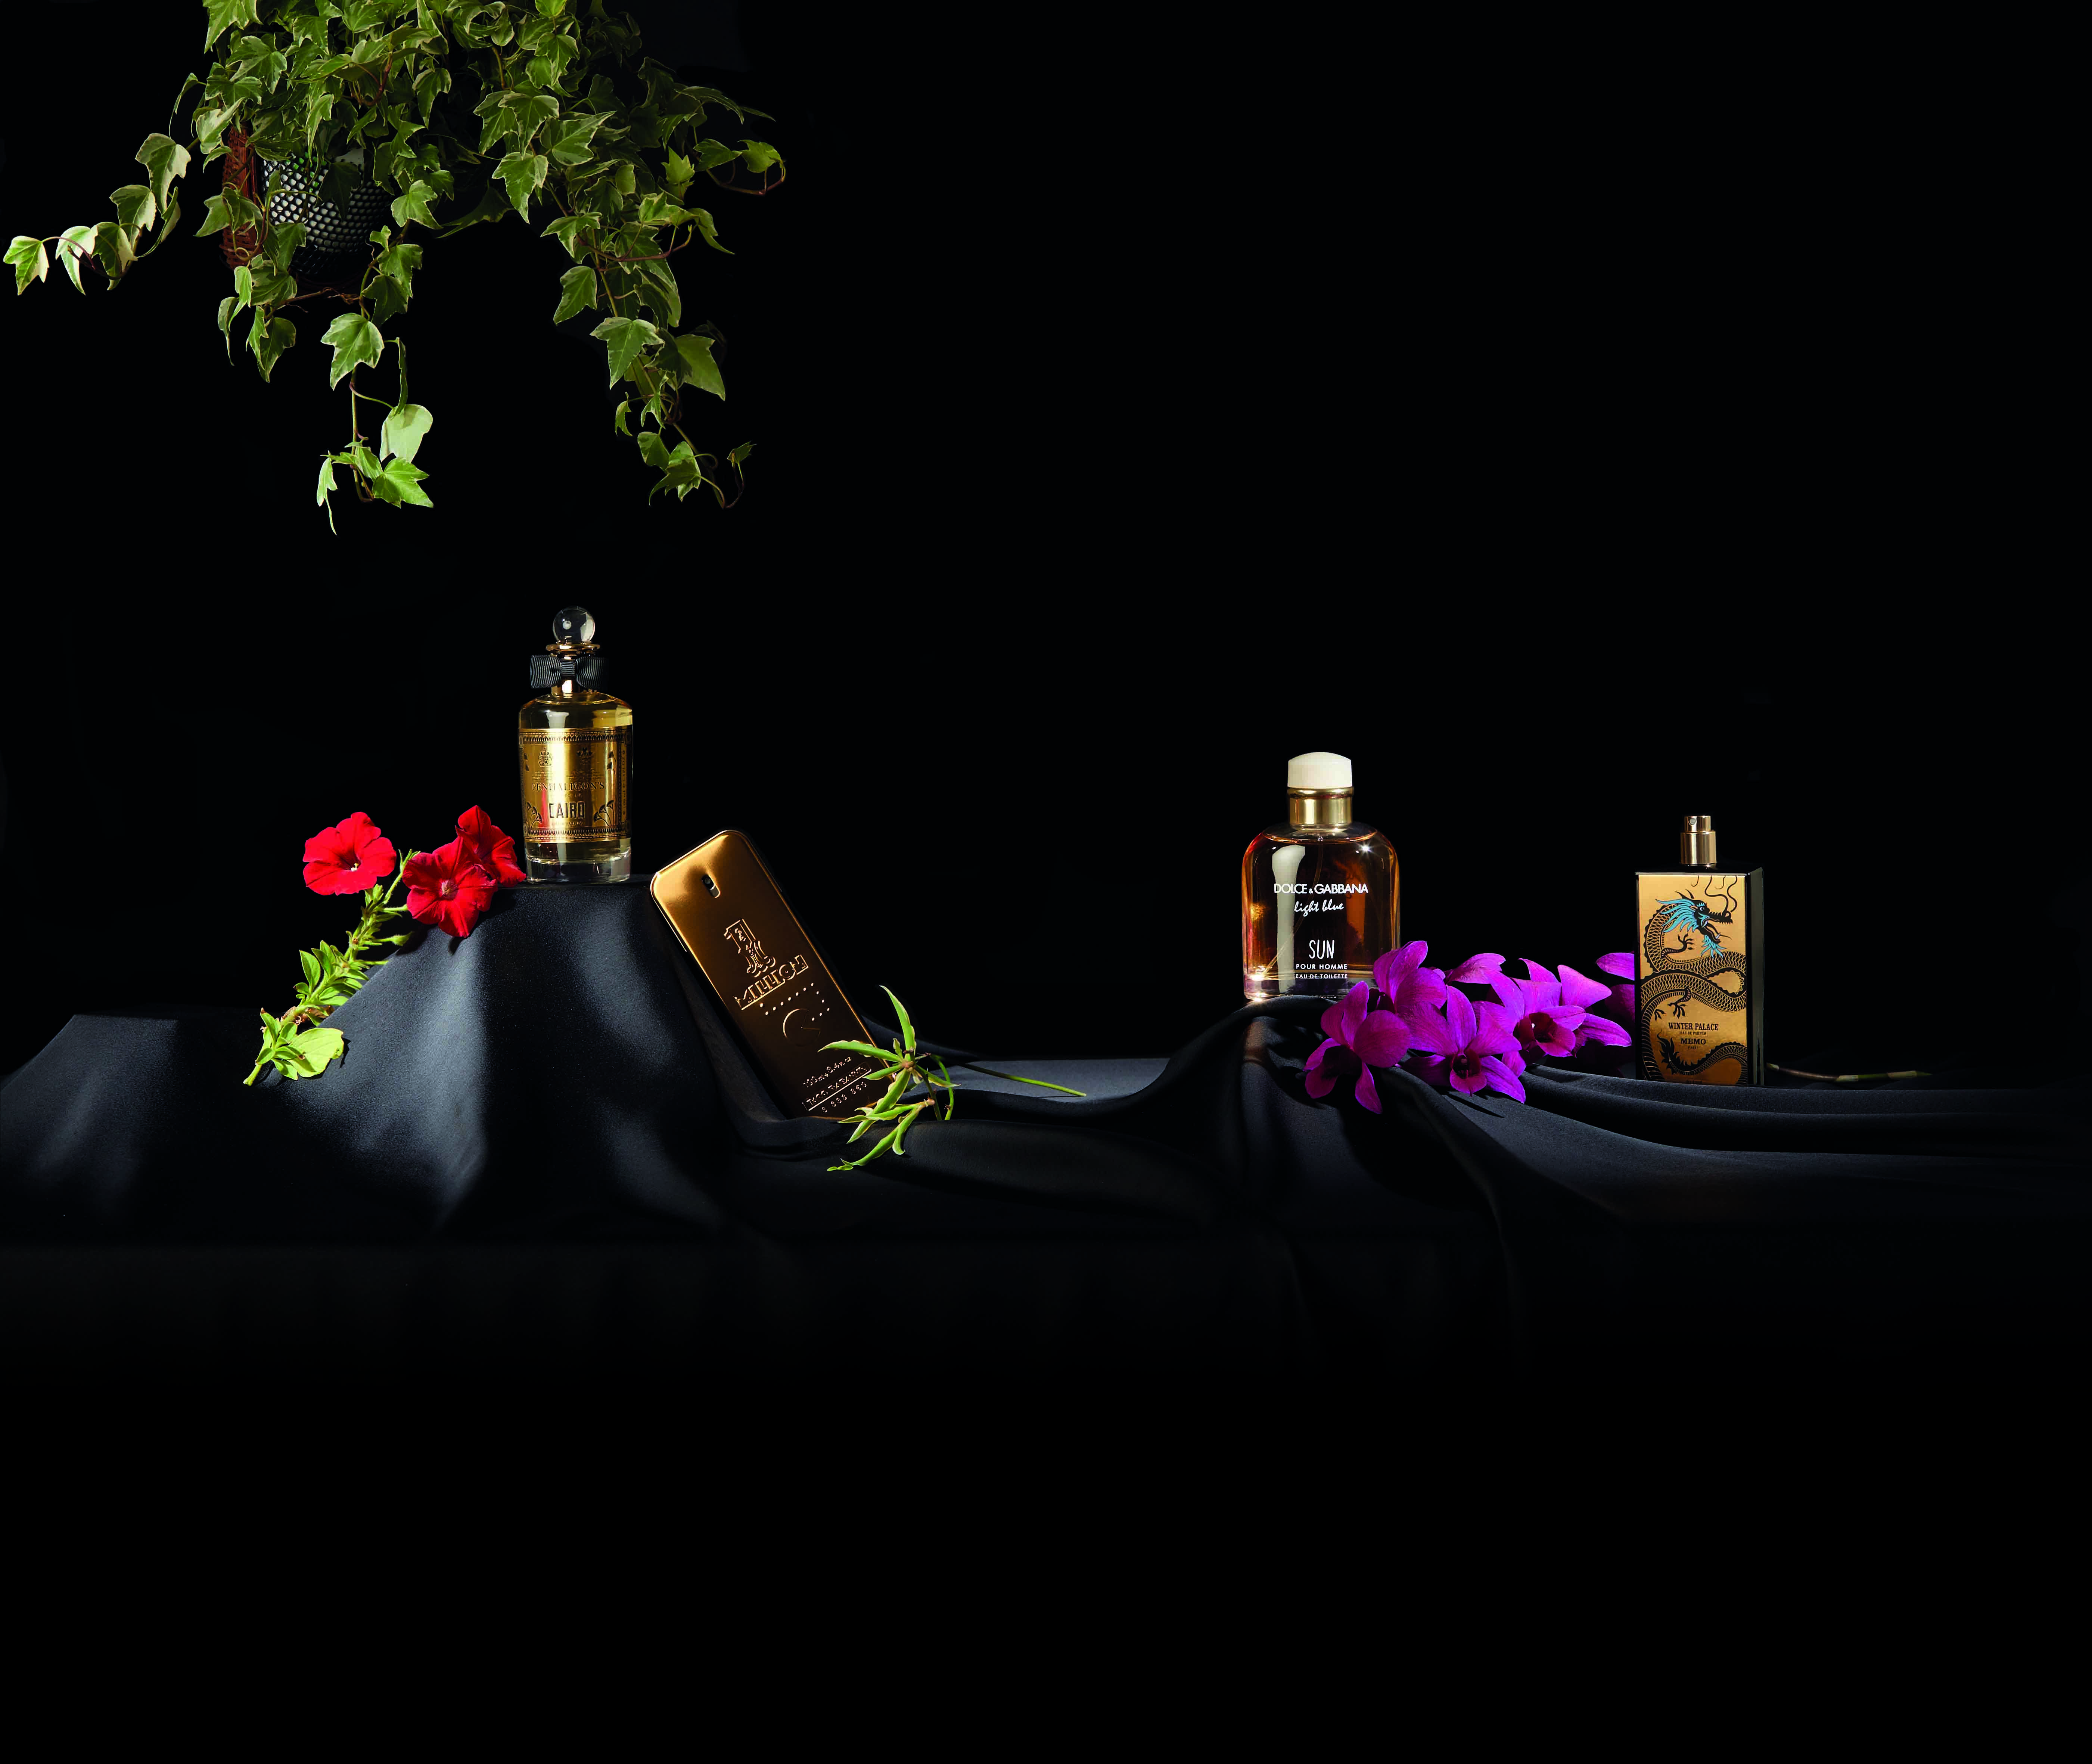 Garden of Treasures: 4 Golden-Themed Fragrances to Use This Year